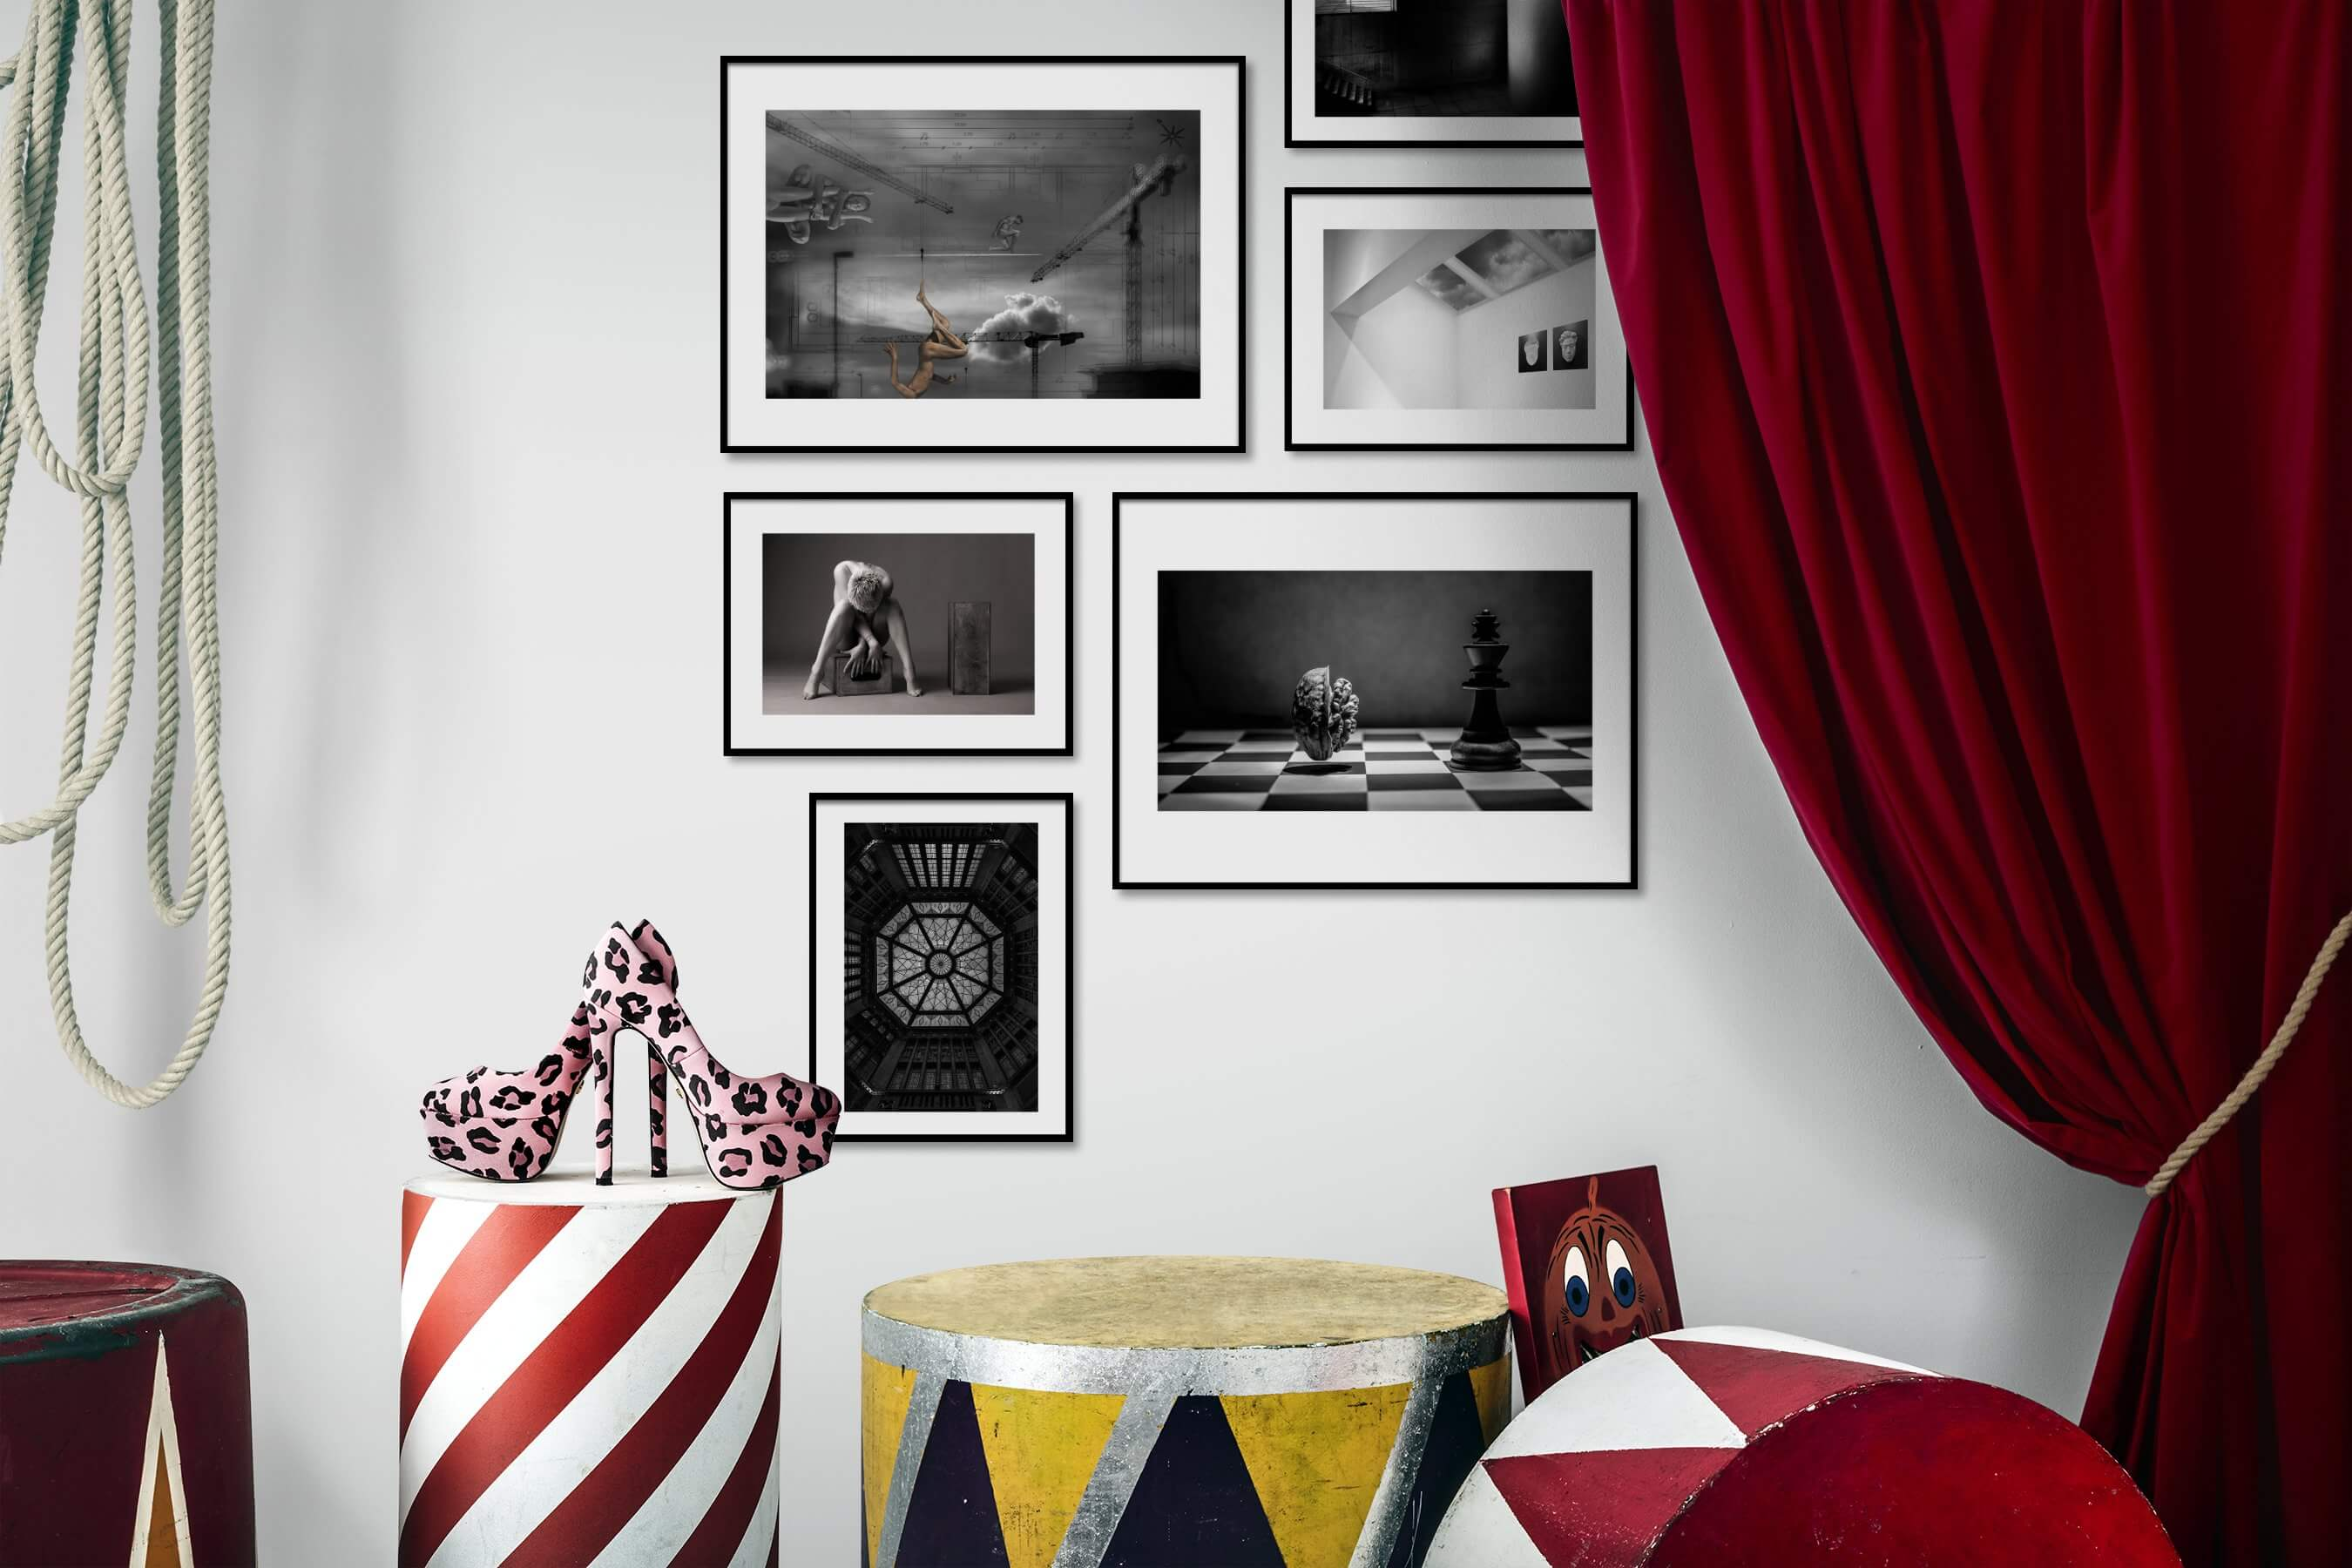 Gallery wall idea with six framed pictures arranged on a wall depicting Artsy, Black & White, For the Minimalist, For the Maximalist, Vintage, and For the Moderate